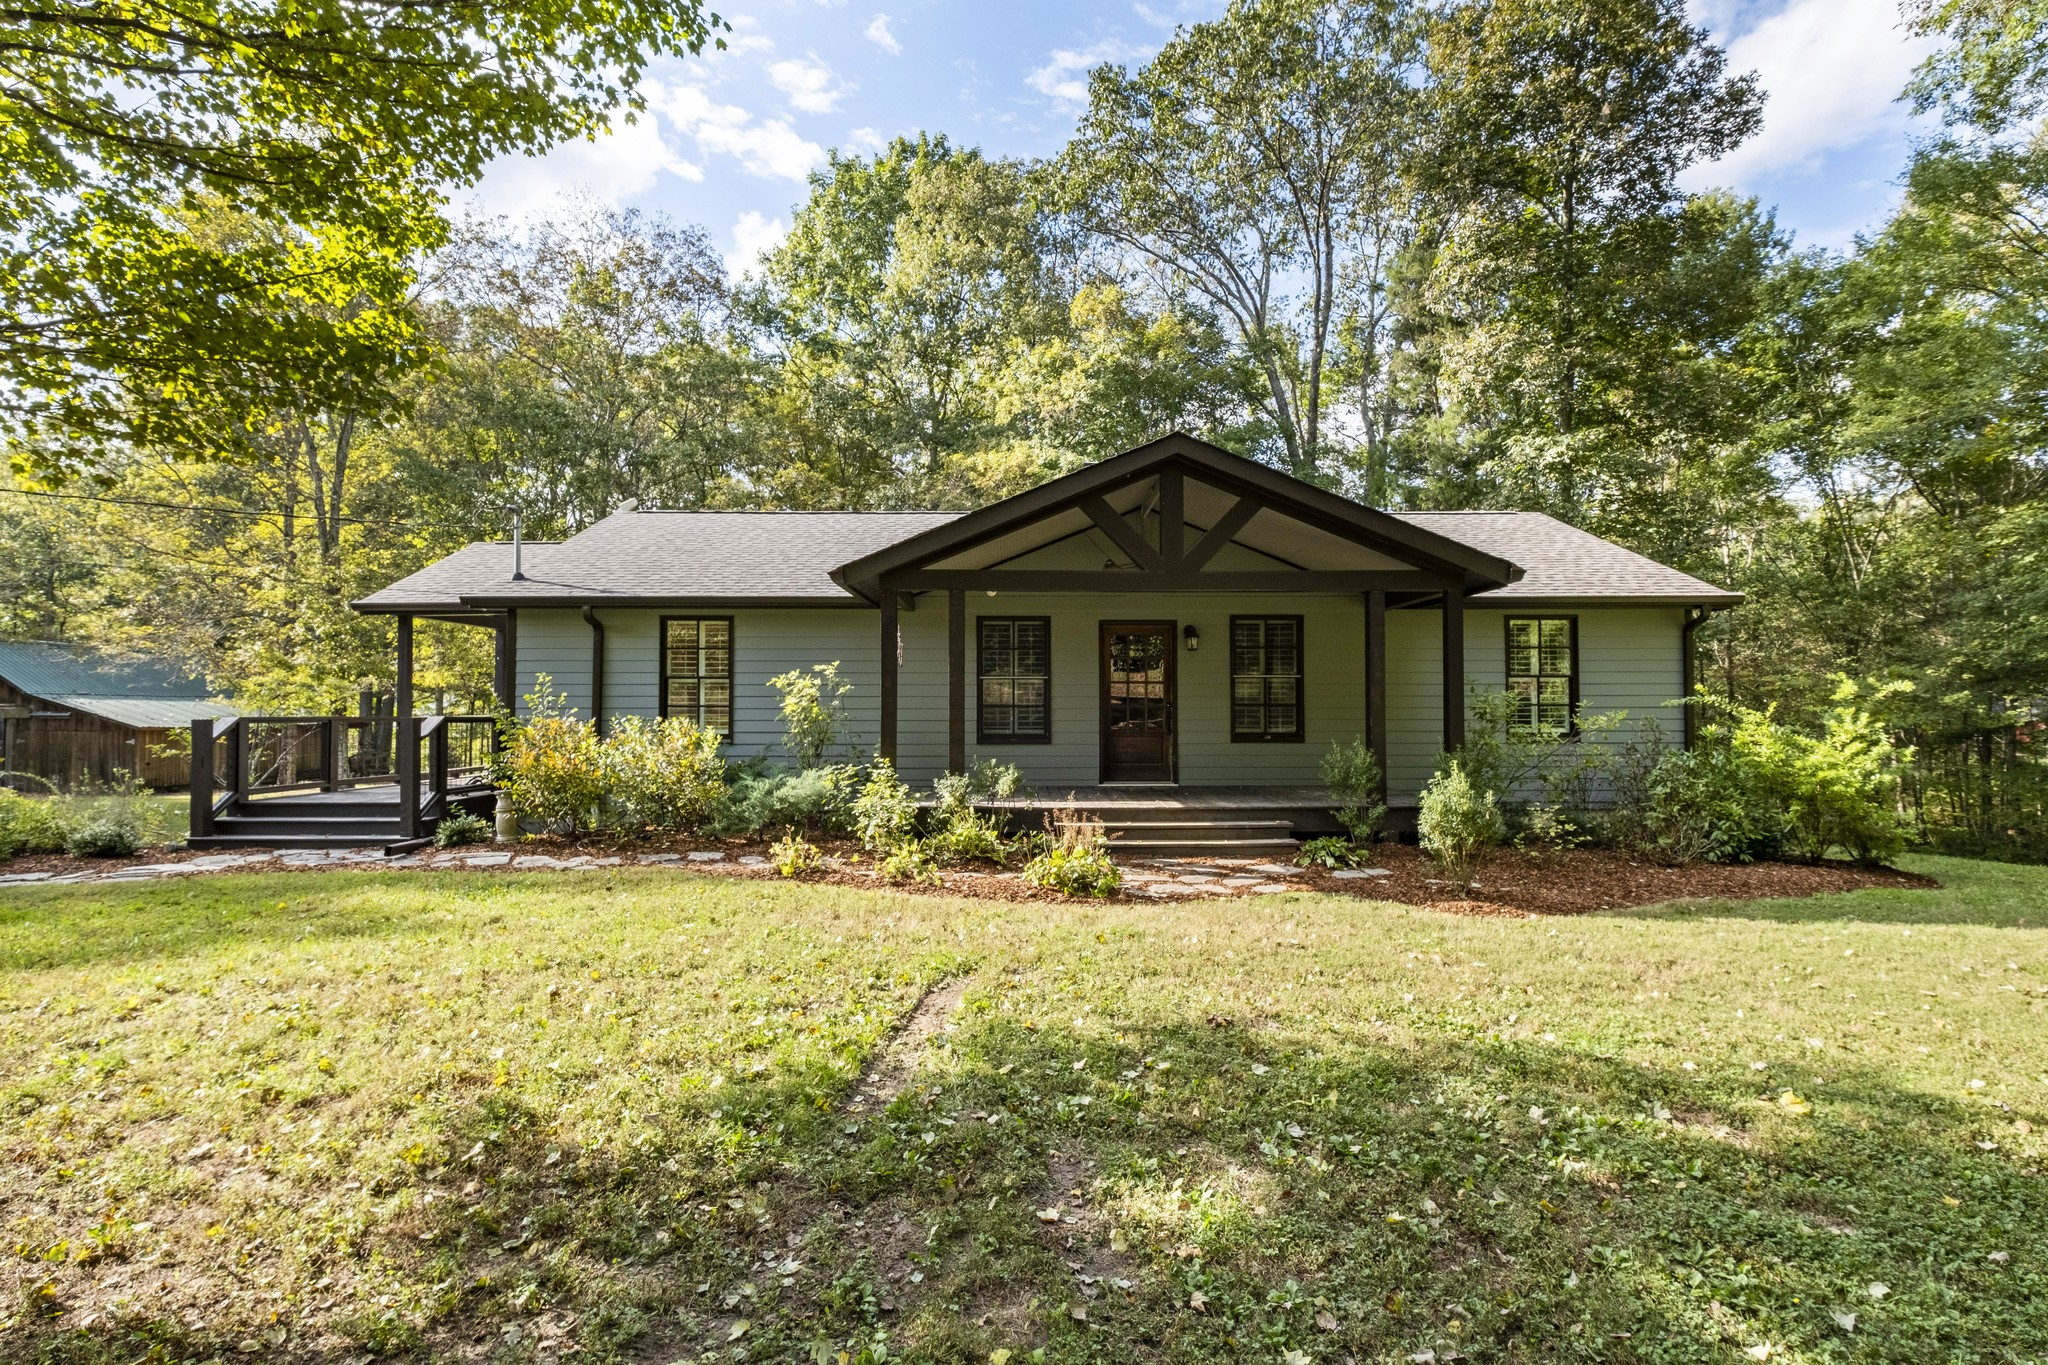 Over 6 acres on the Harpeth River! This picturesque property features a cute, country house in the most serene setting Tennessee has to offer. Ten minutes from Leiper's Fork and 15 minutes from downtown Franklin allows you to feel remote, without the commute. Don't miss it!